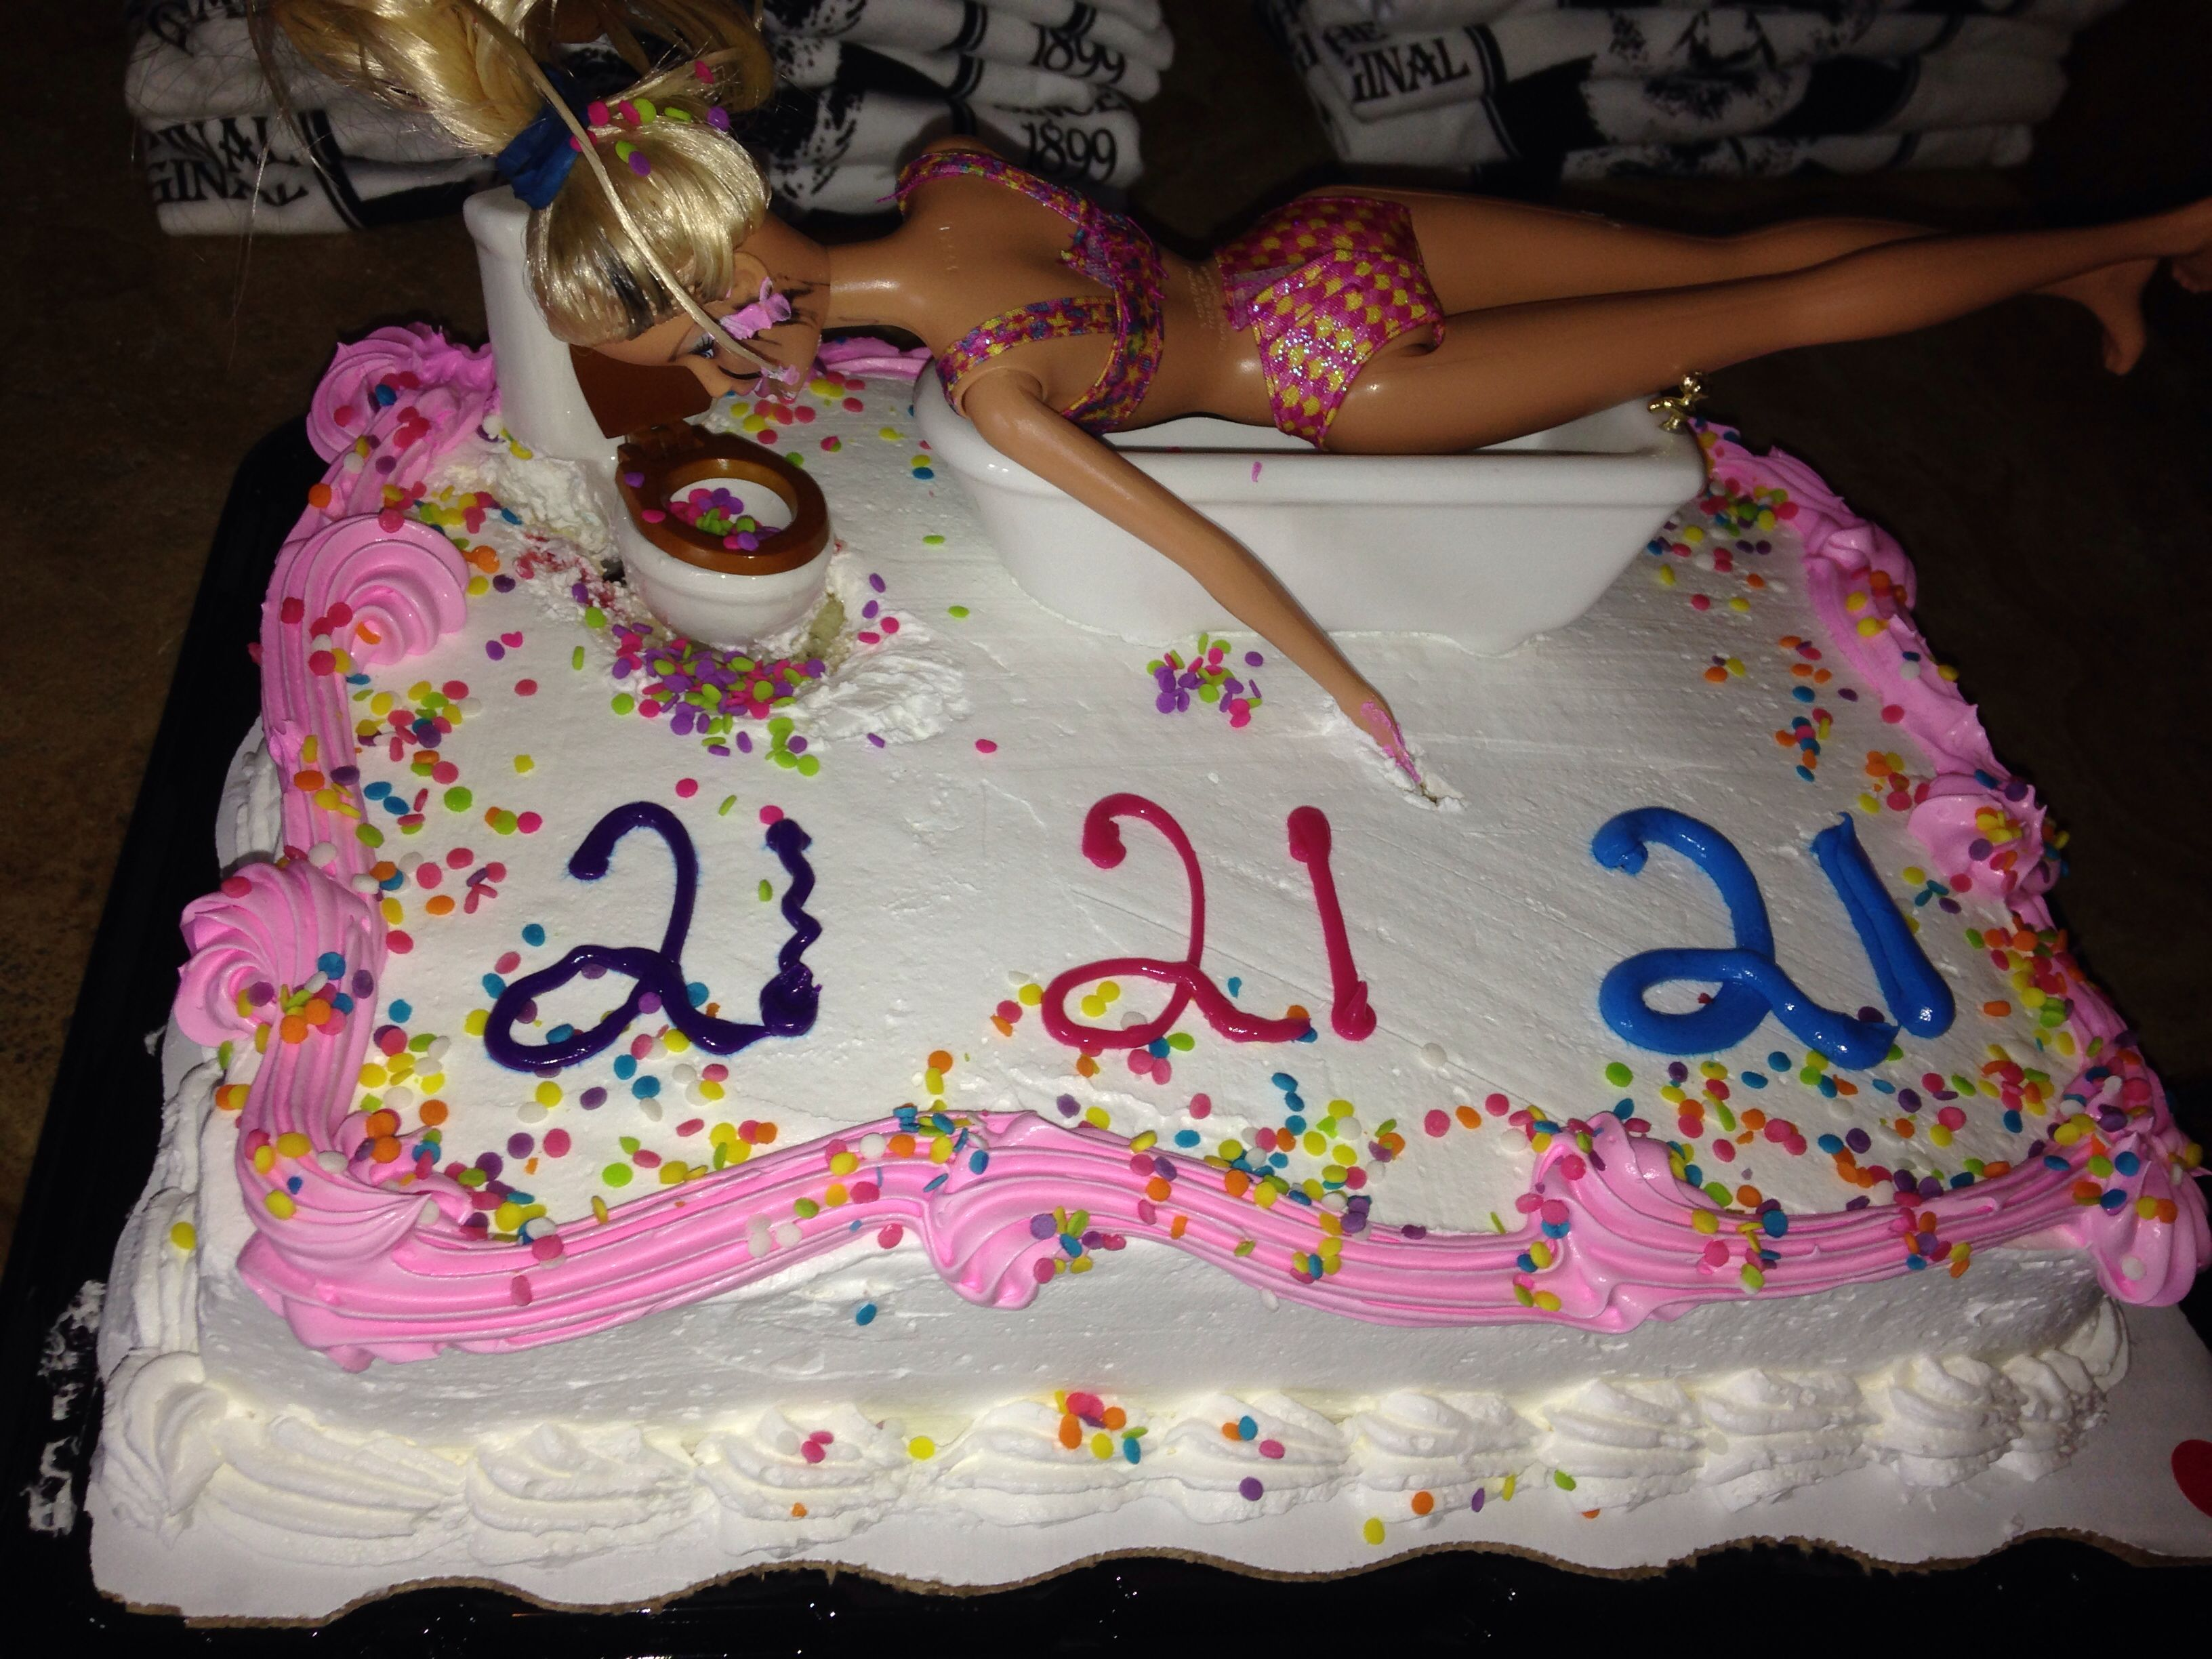 21 Figure Birthday Cakes: Best Friends 21st Birthday Cake #21 #birthday #cake #puke